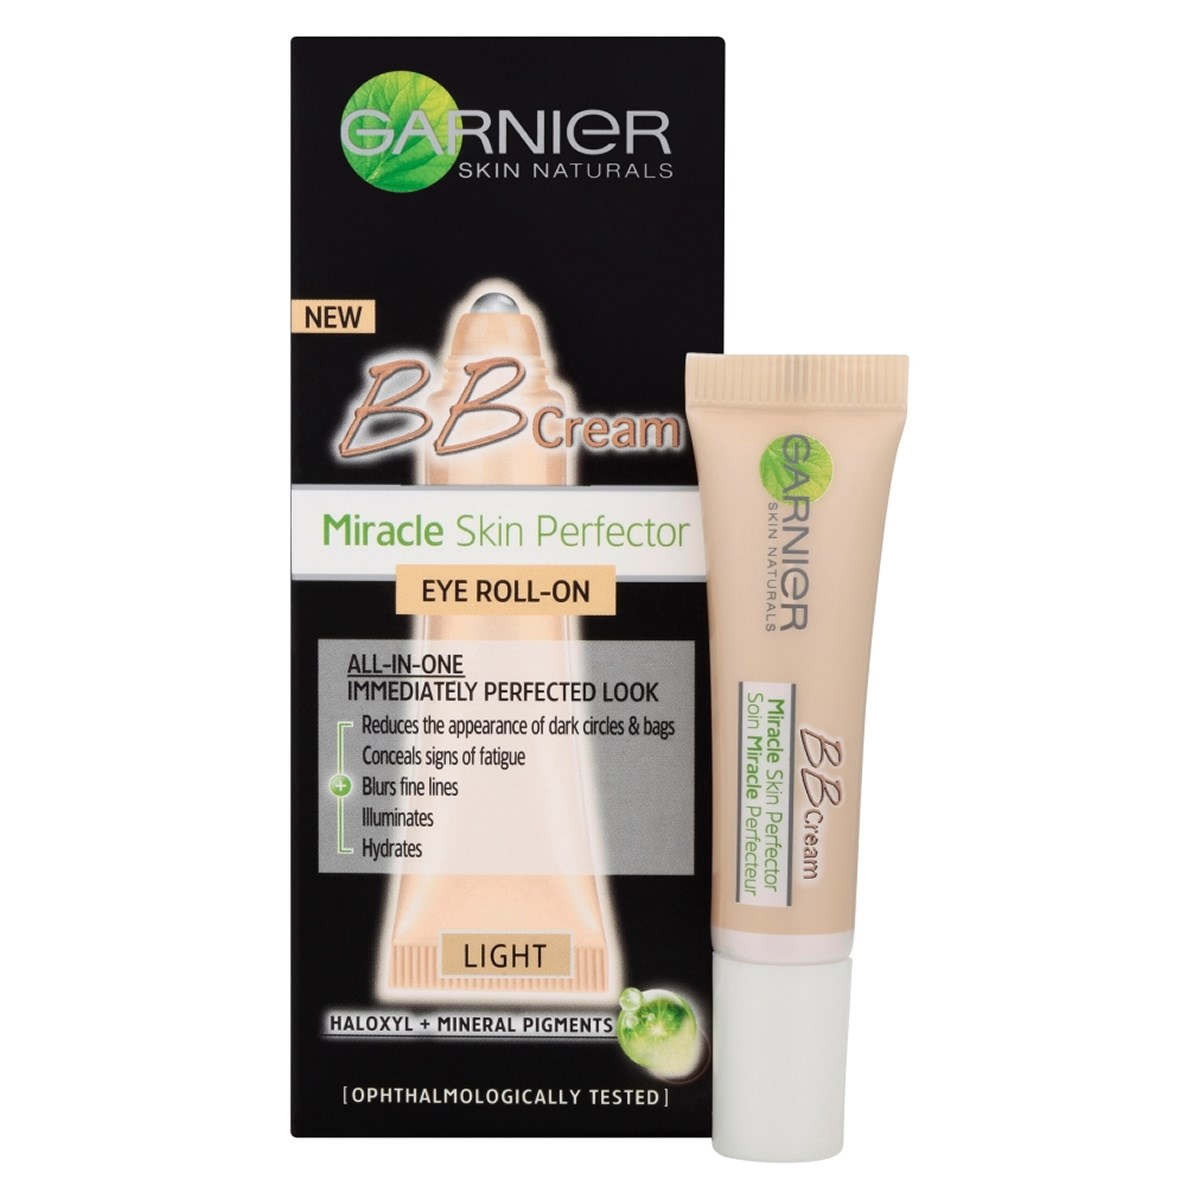 Garnier B.B. Cream Miracle Skin Perfector Eye Roll-on - Light